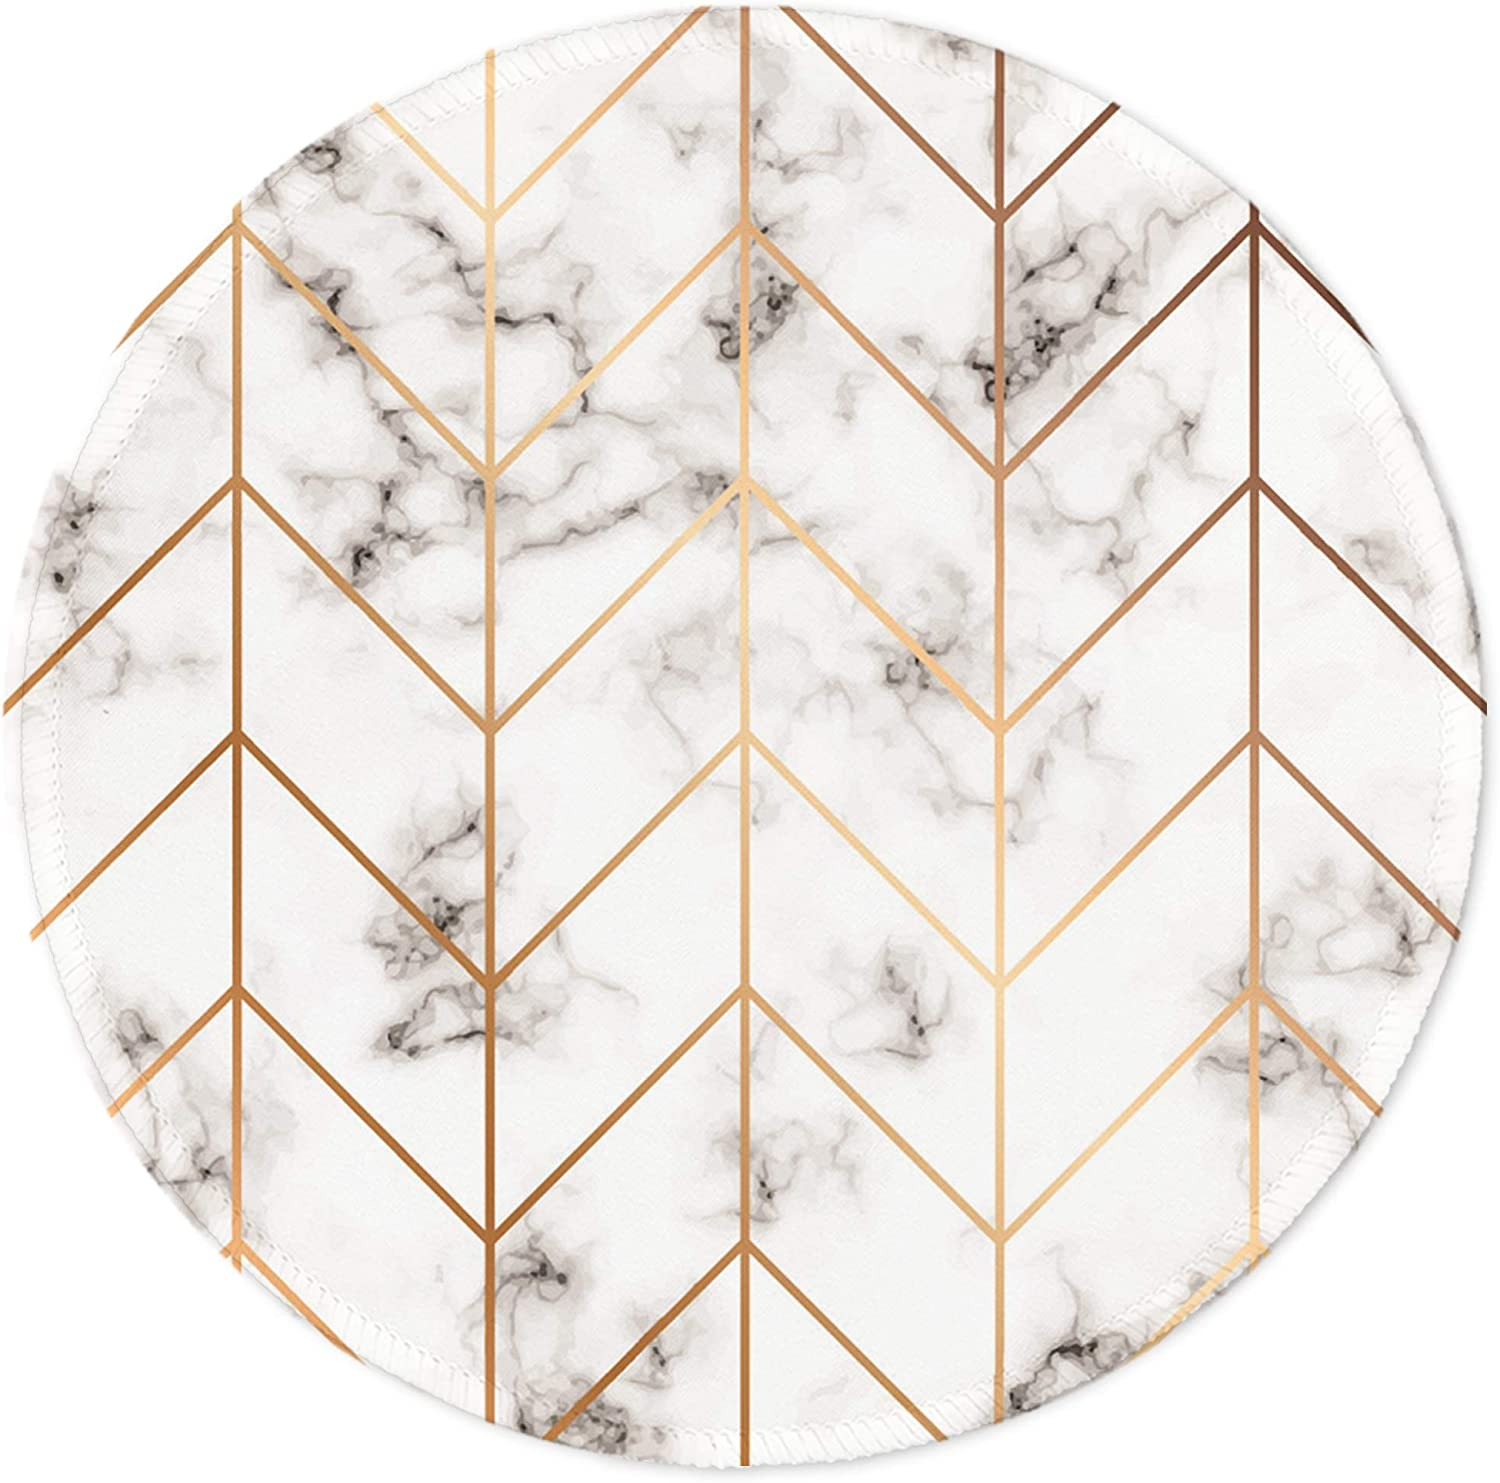 Boutilon Round Mouse Pad Non-Slip Rubber Base Mouse Pads Cute Mat Size 7.9 x 7.9inch Comfortable Office and Home Gaming Mouse Pad for Computer Desktops, PC, Laptop (Geometric Marble)